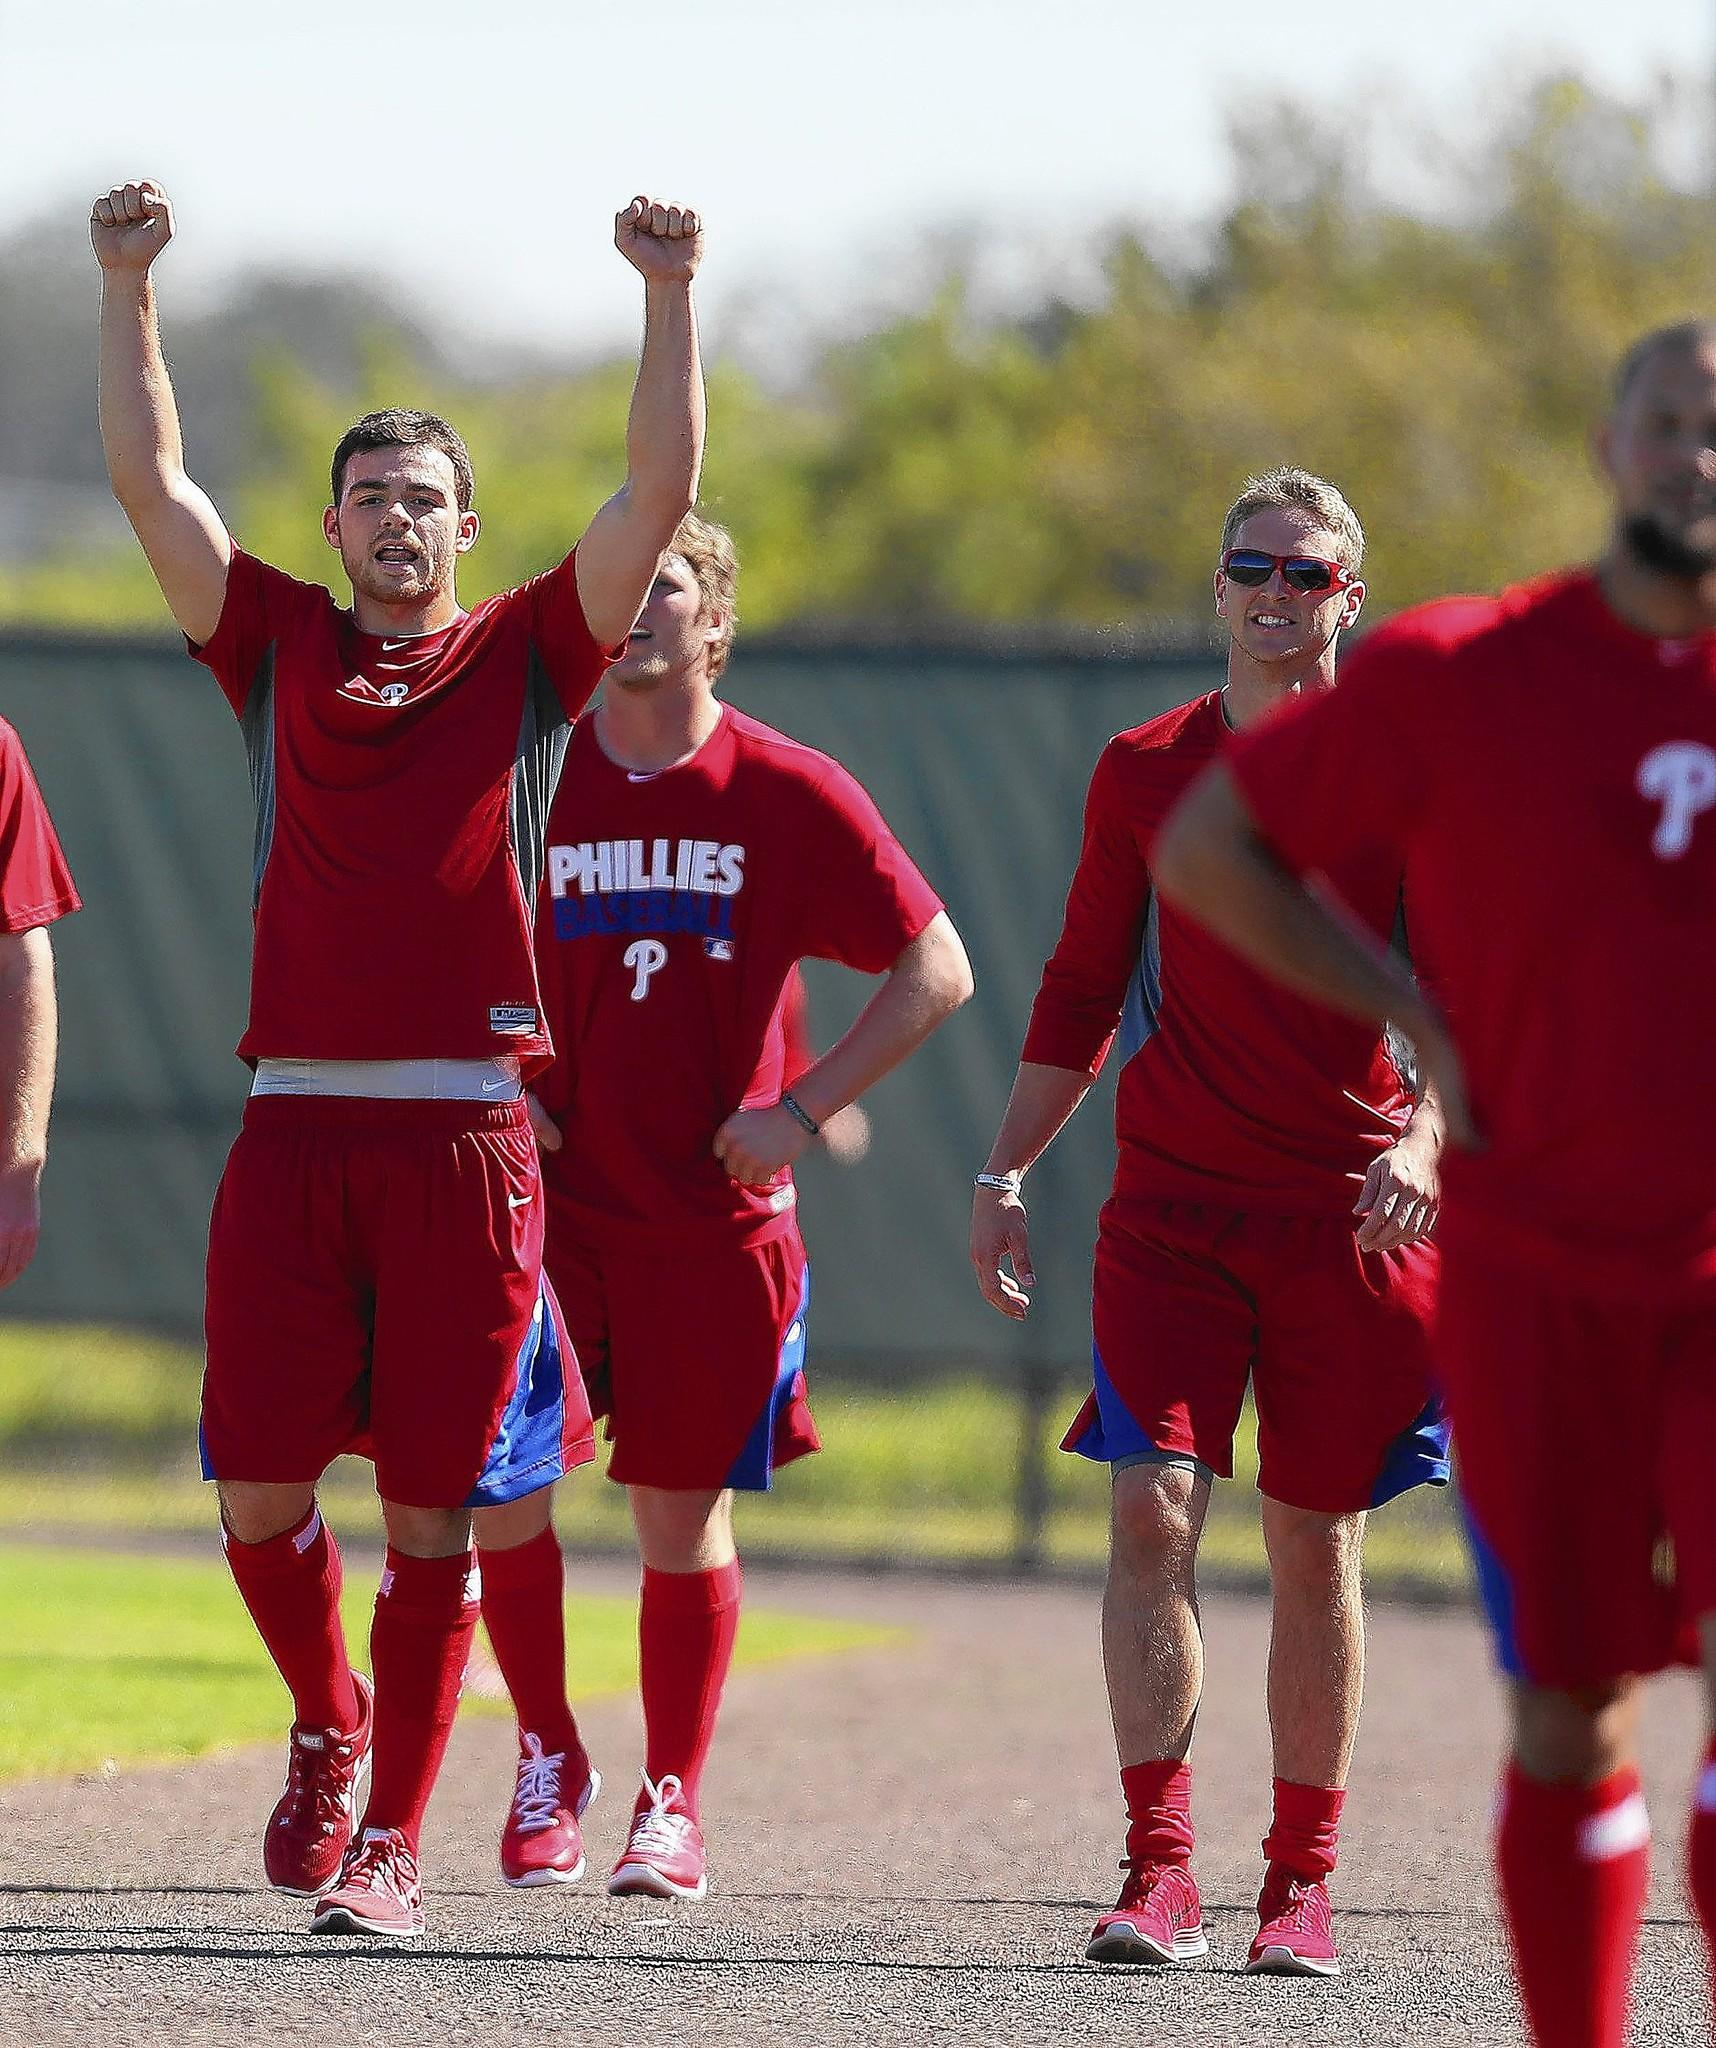 Philadelphia Phillies' Jesse Biddle, left, attends spring training in Clearwater, Fla., on Monday, Feb. 17, 2014.